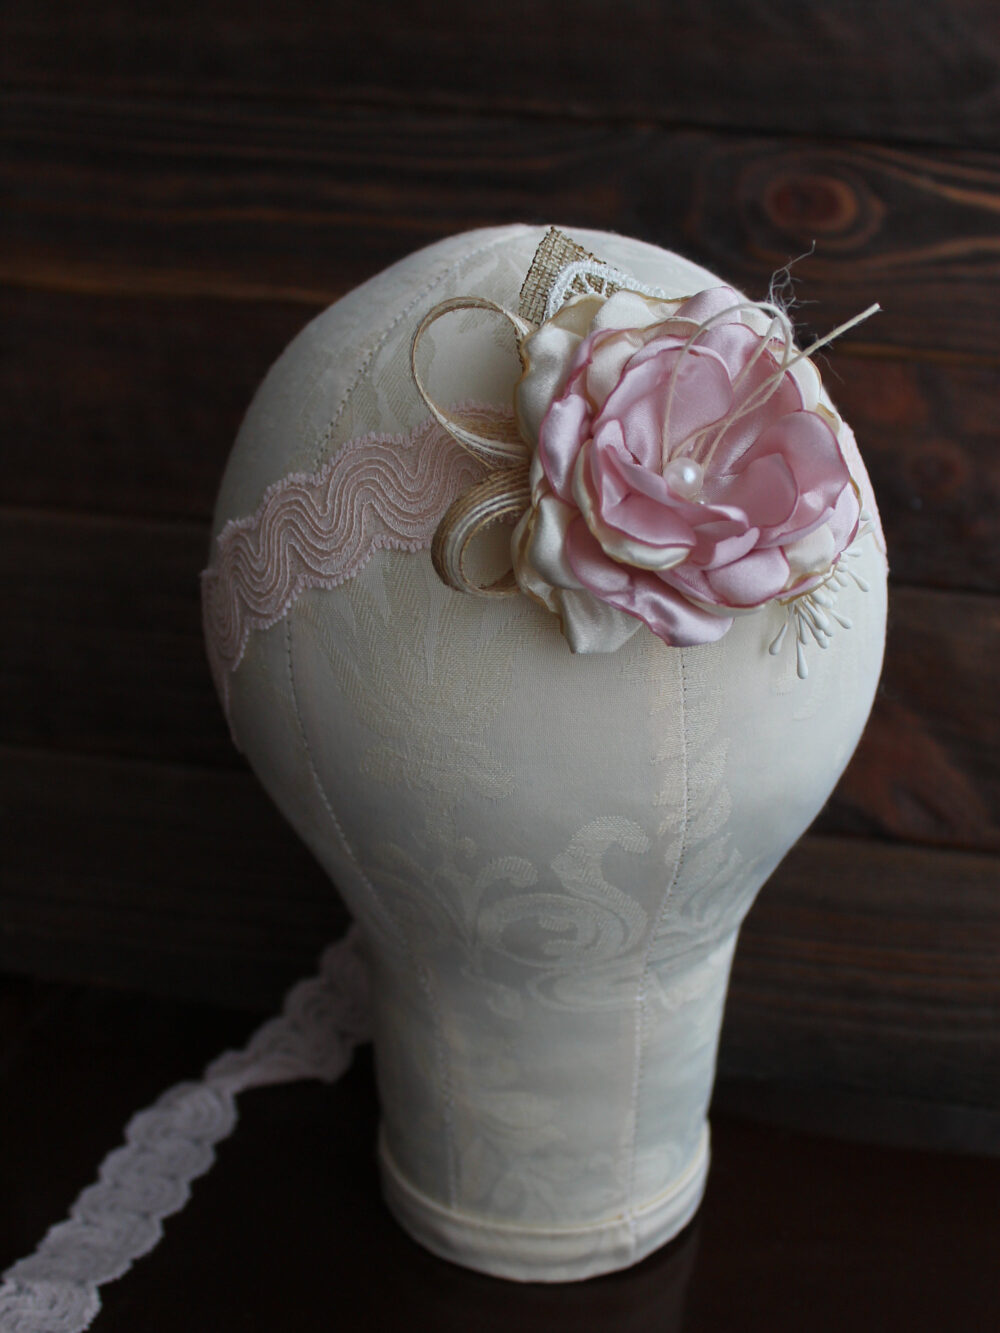 Flower Girl Headband Rustic, Blush Floral Headpiece For Girls, Newborn Flower Headband, Burlap Lace Head Band